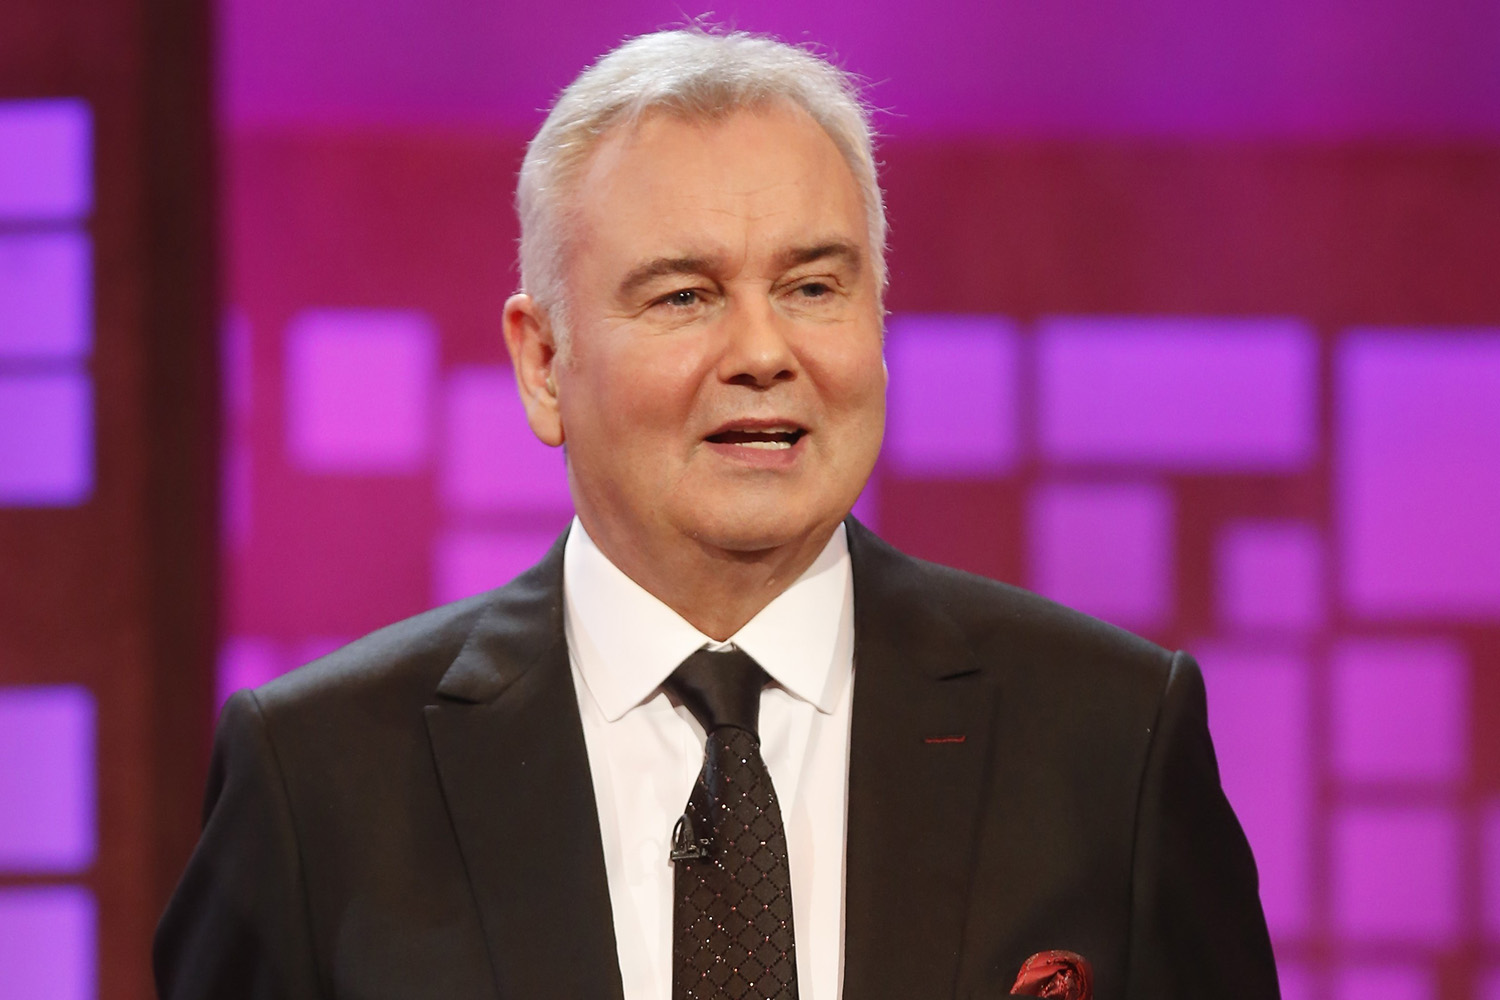 Eamonn Holmes' fans gush over 'beautiful' photos of him and his daughter